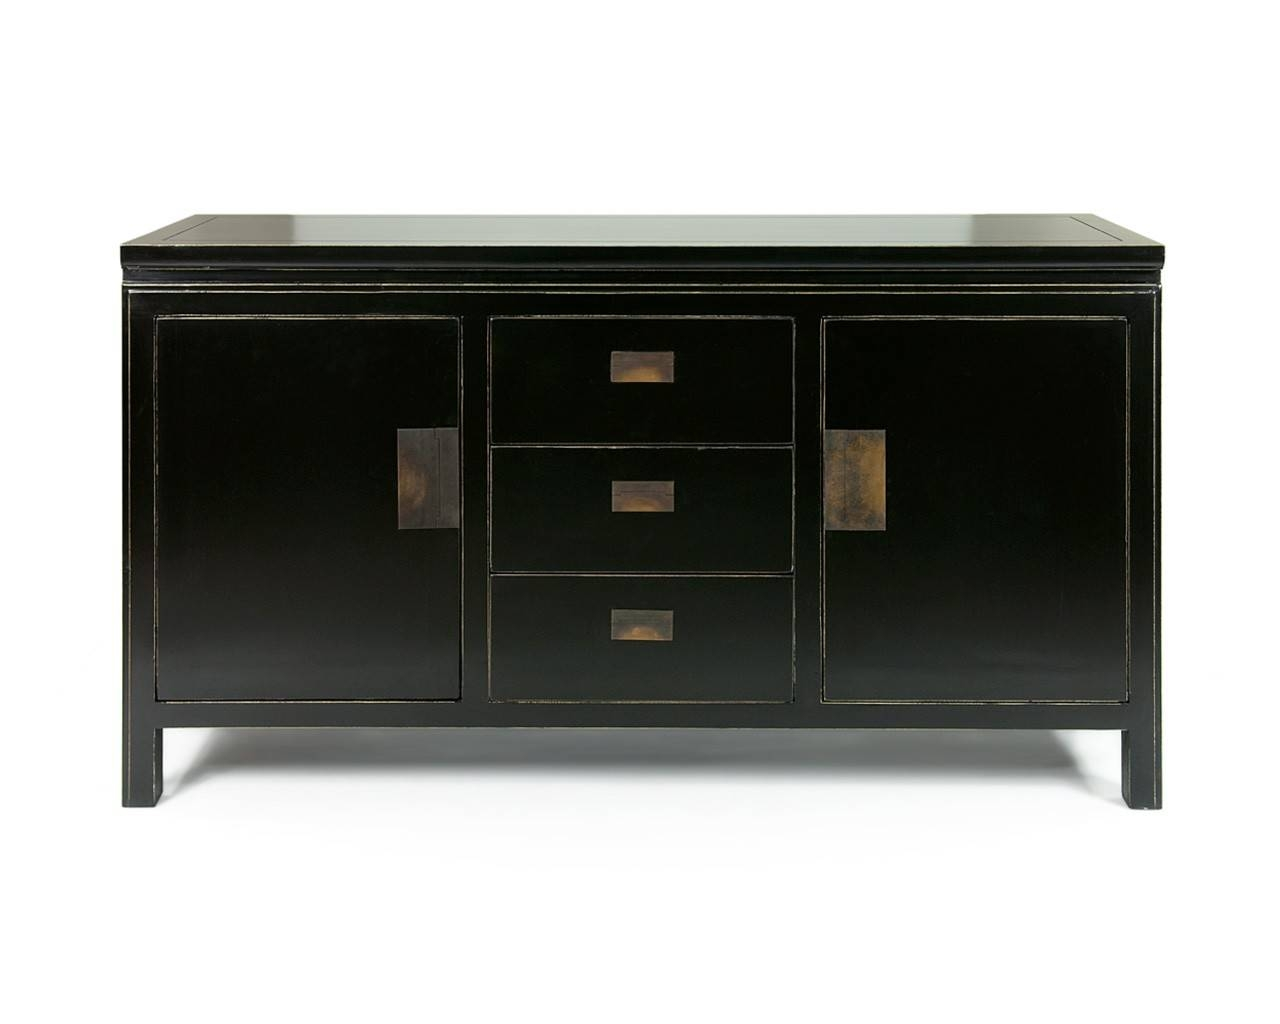 Oriental Black Lacquered Sideboards - Shanxi Large throughout Black Sideboards (Image 14 of 30)